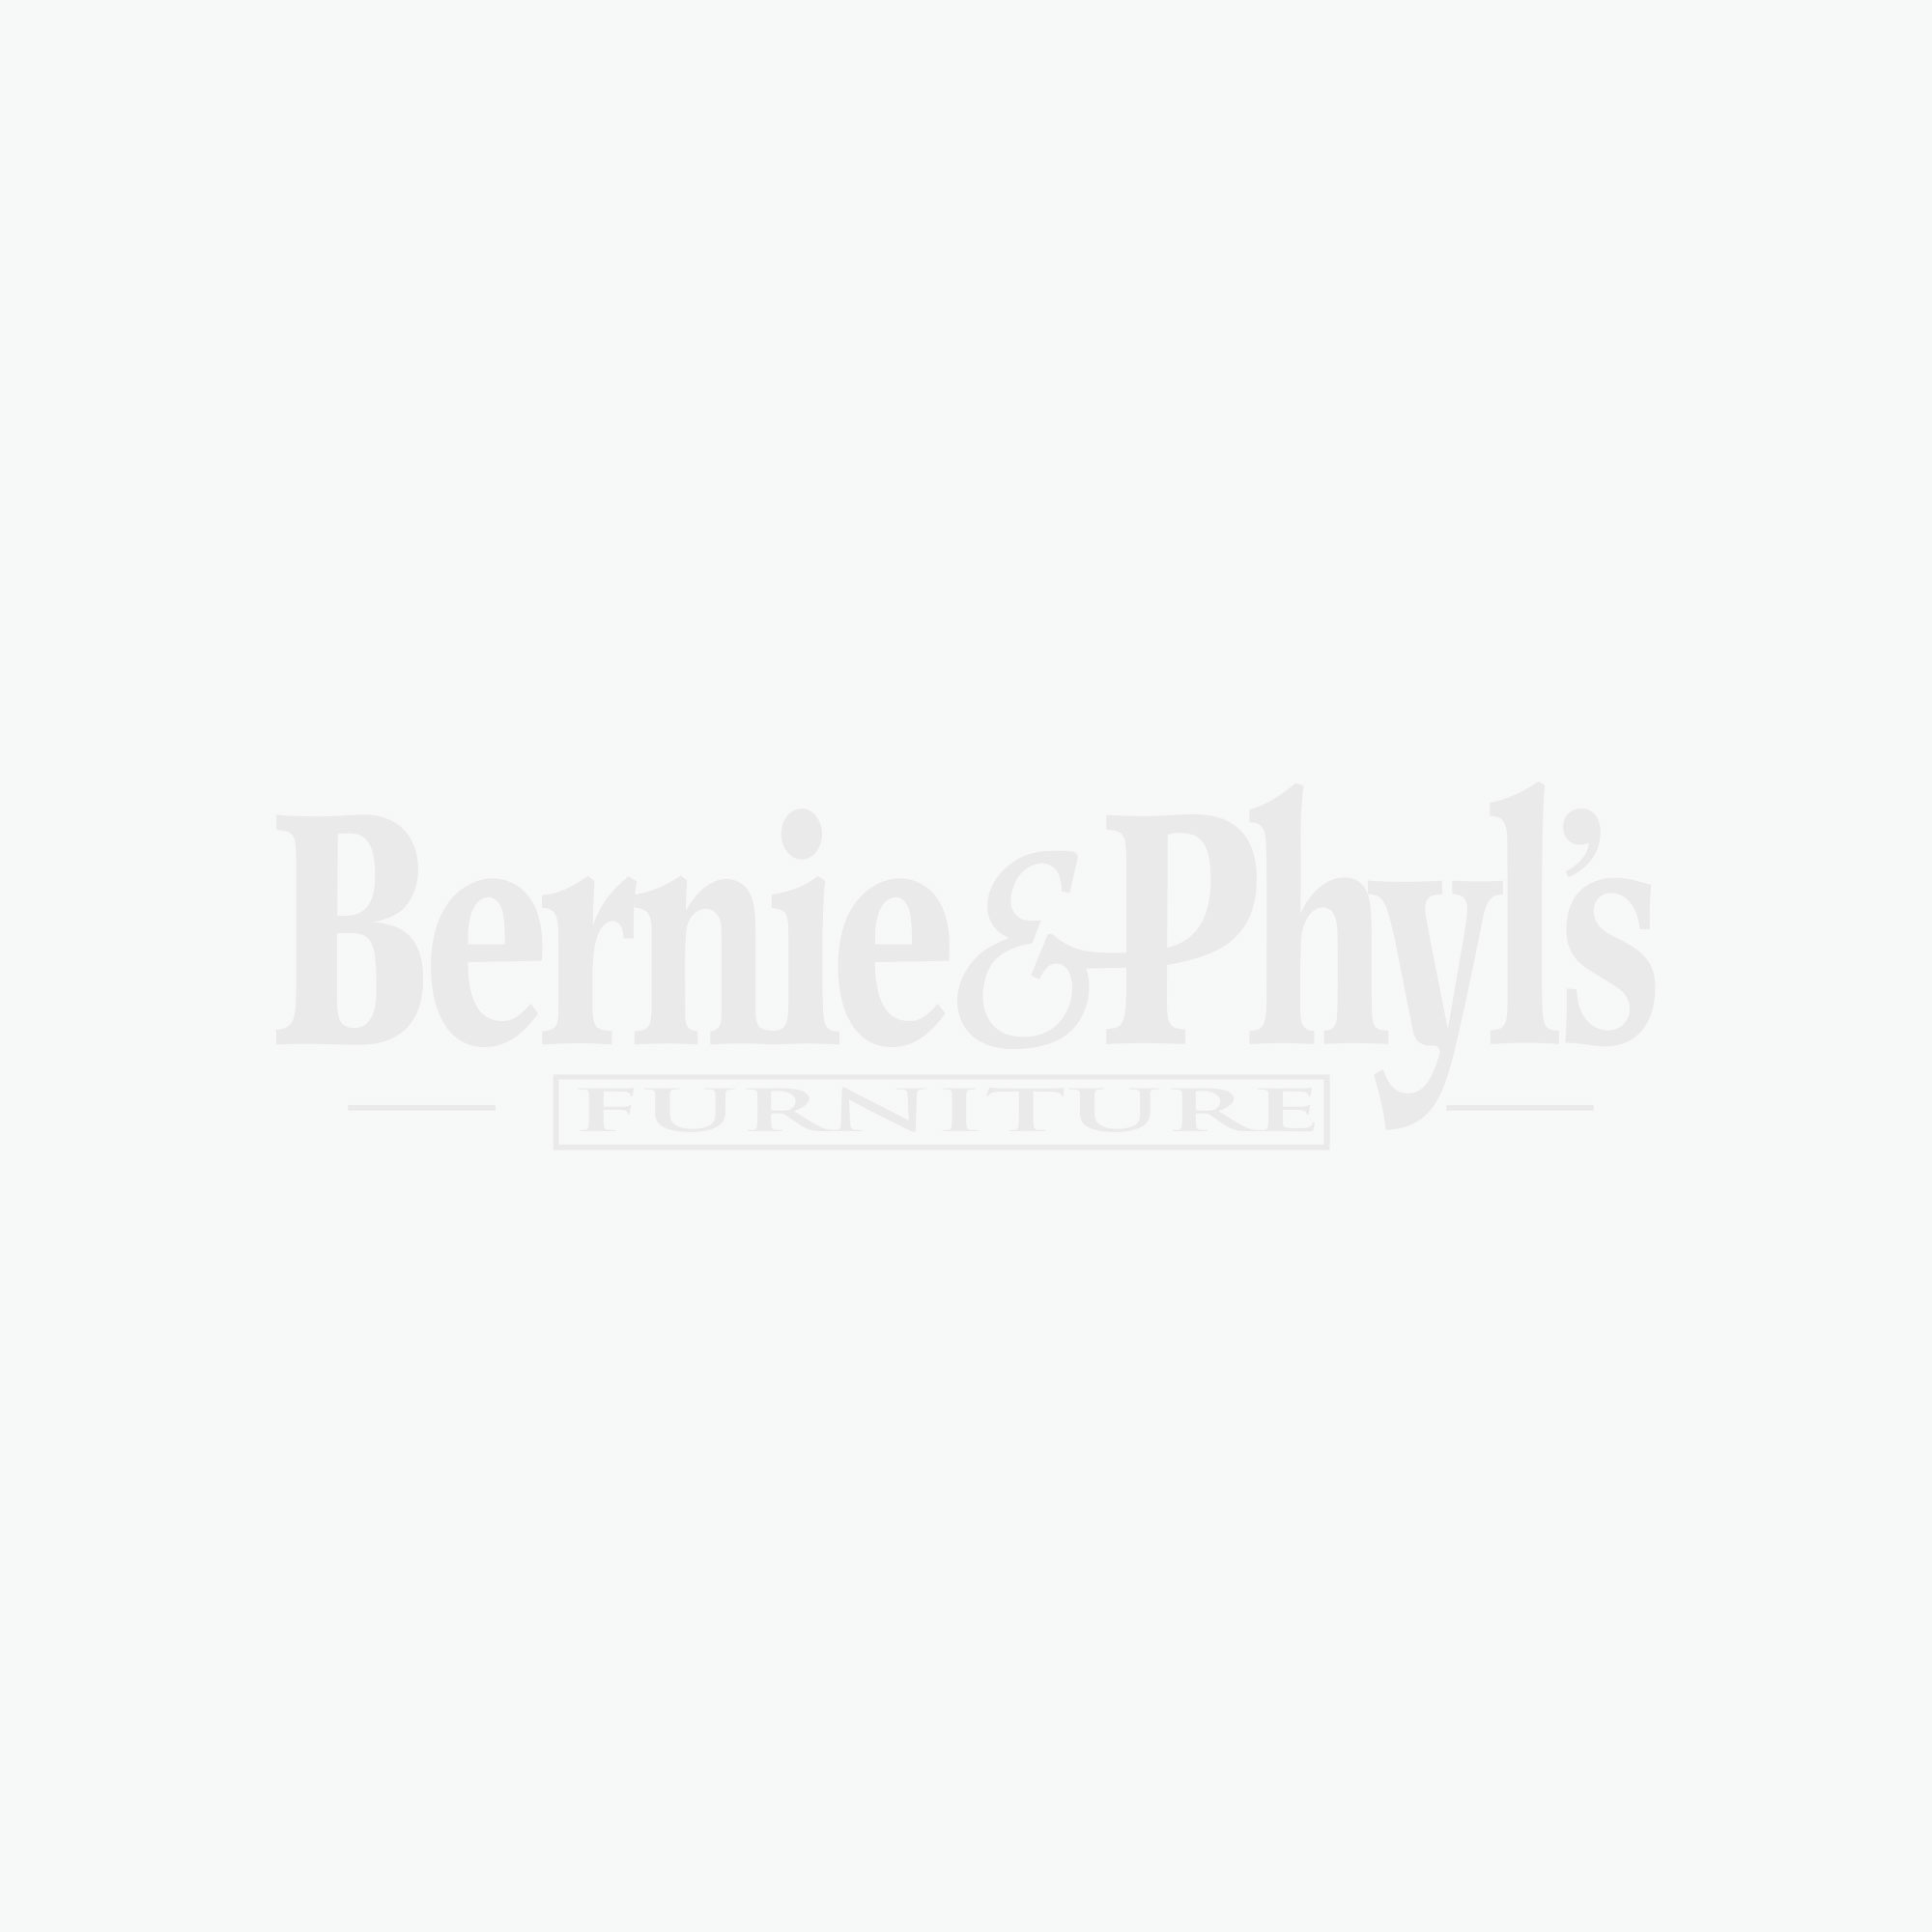 Abbey Park 7 Piece Dining Room Table With 4 Upholstered Side Chairs And 2 Hostess Chairs Bernie Phyl S Furniture By Liberty Furniture